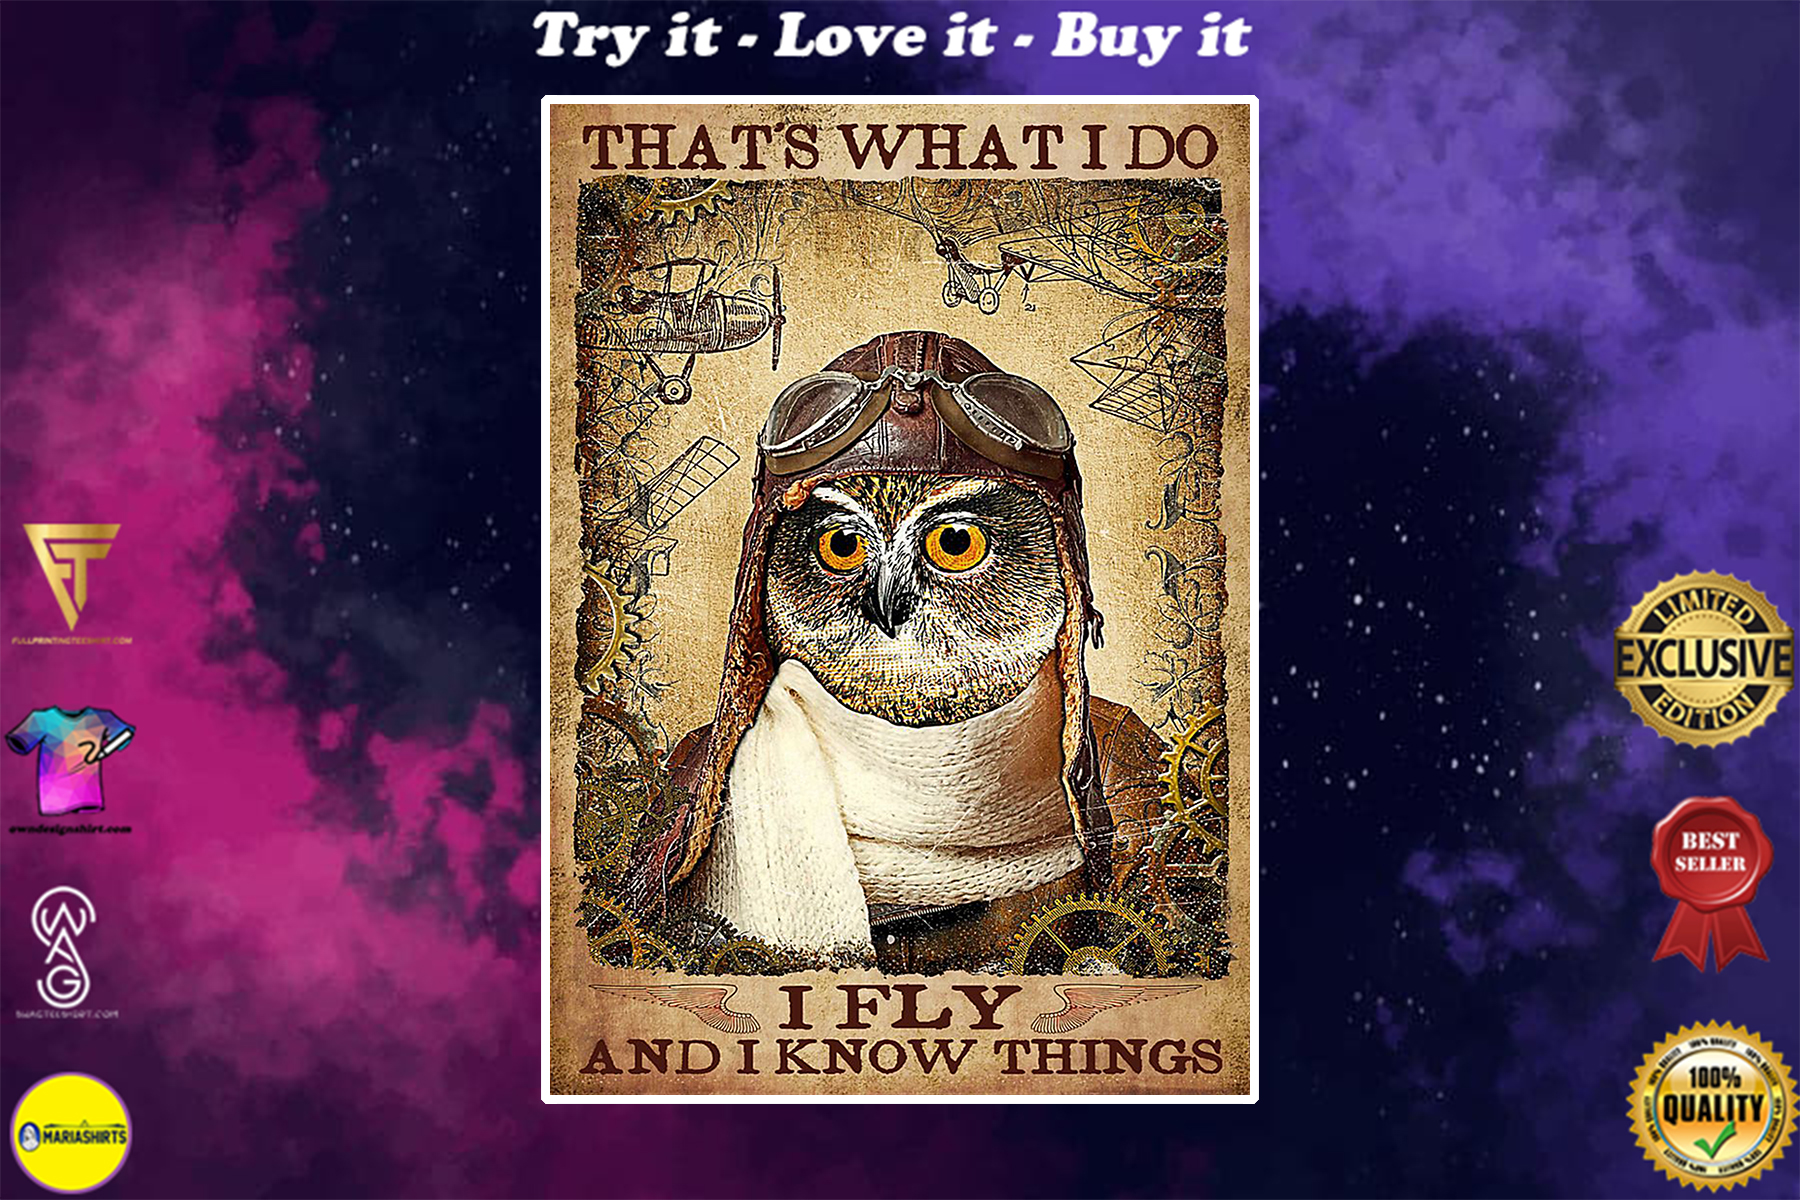 vintage pilot owl thats i do i fly i know things poster